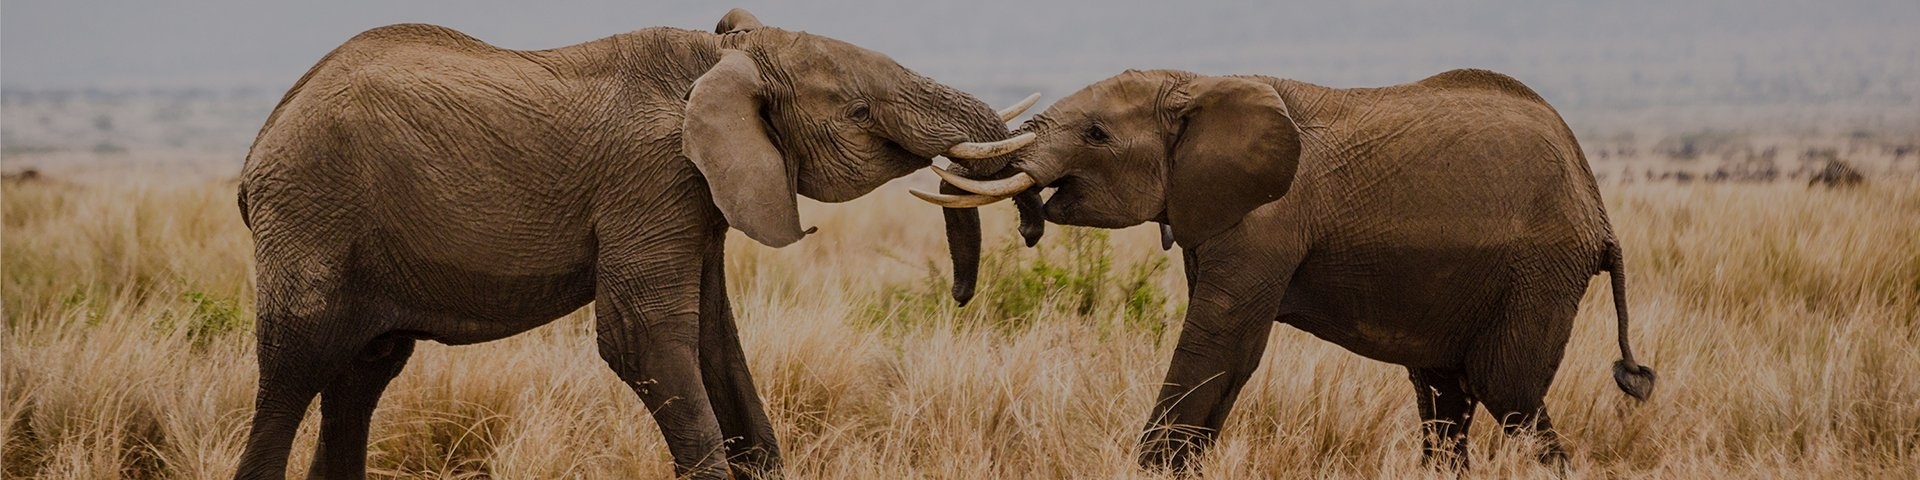 Two elephants face each other and cross trunks.